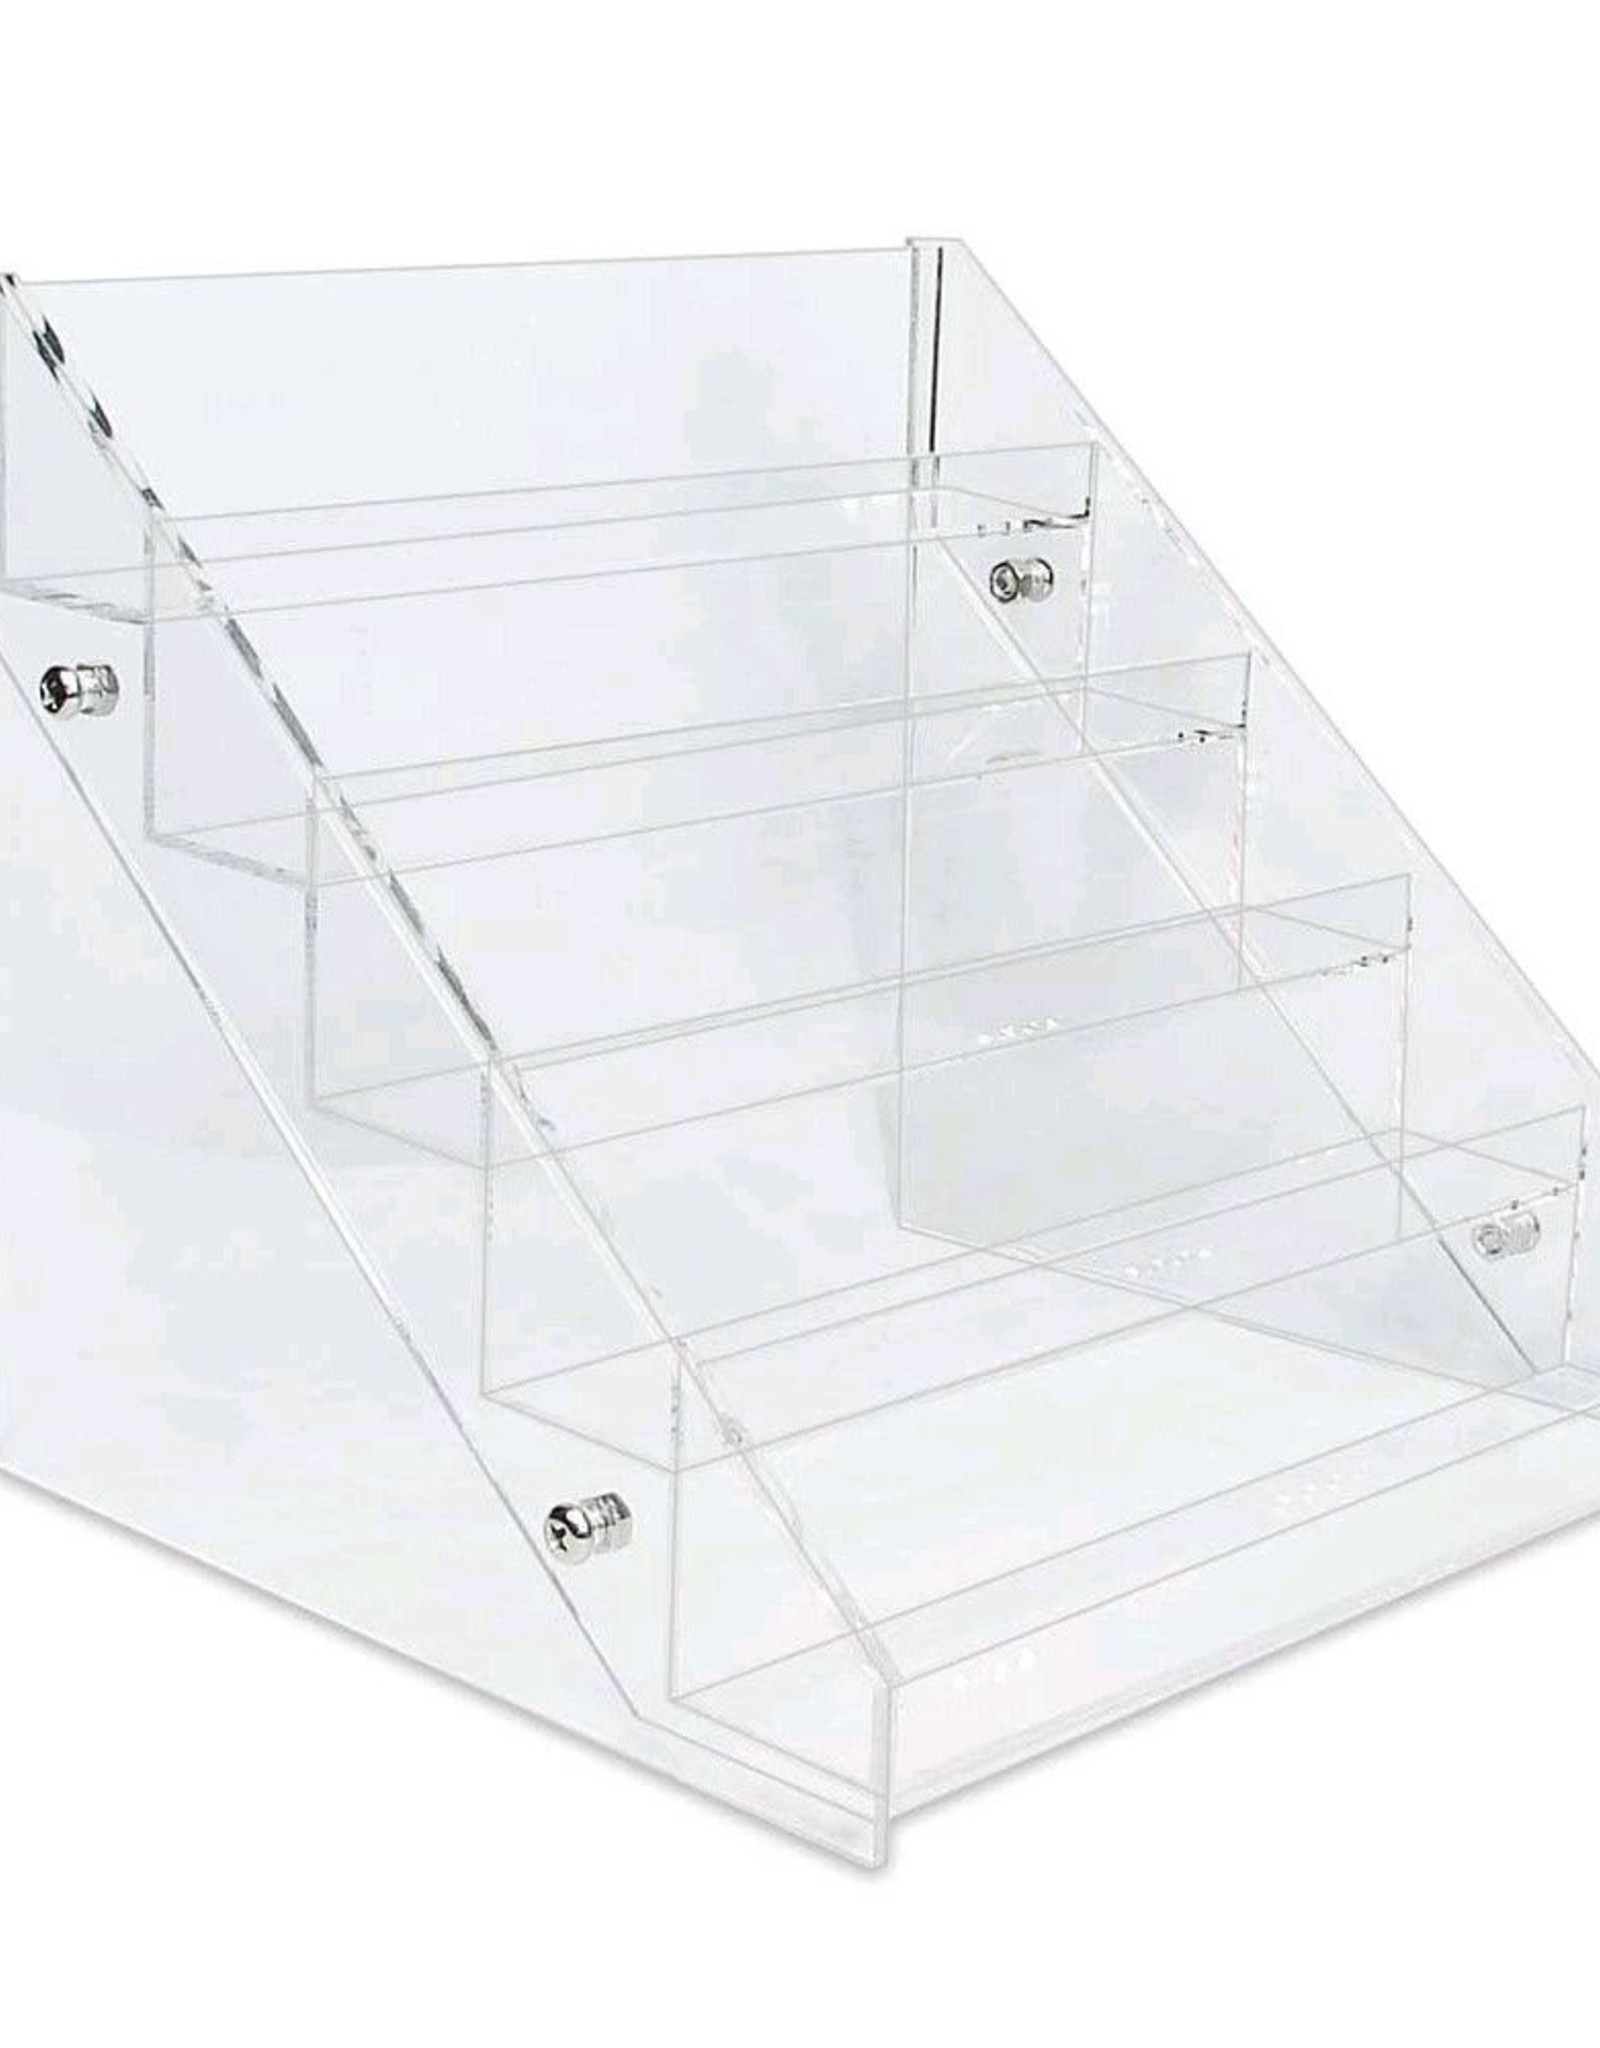 Display Transparent in various sizes for, for example, gel polish or glitter mixes